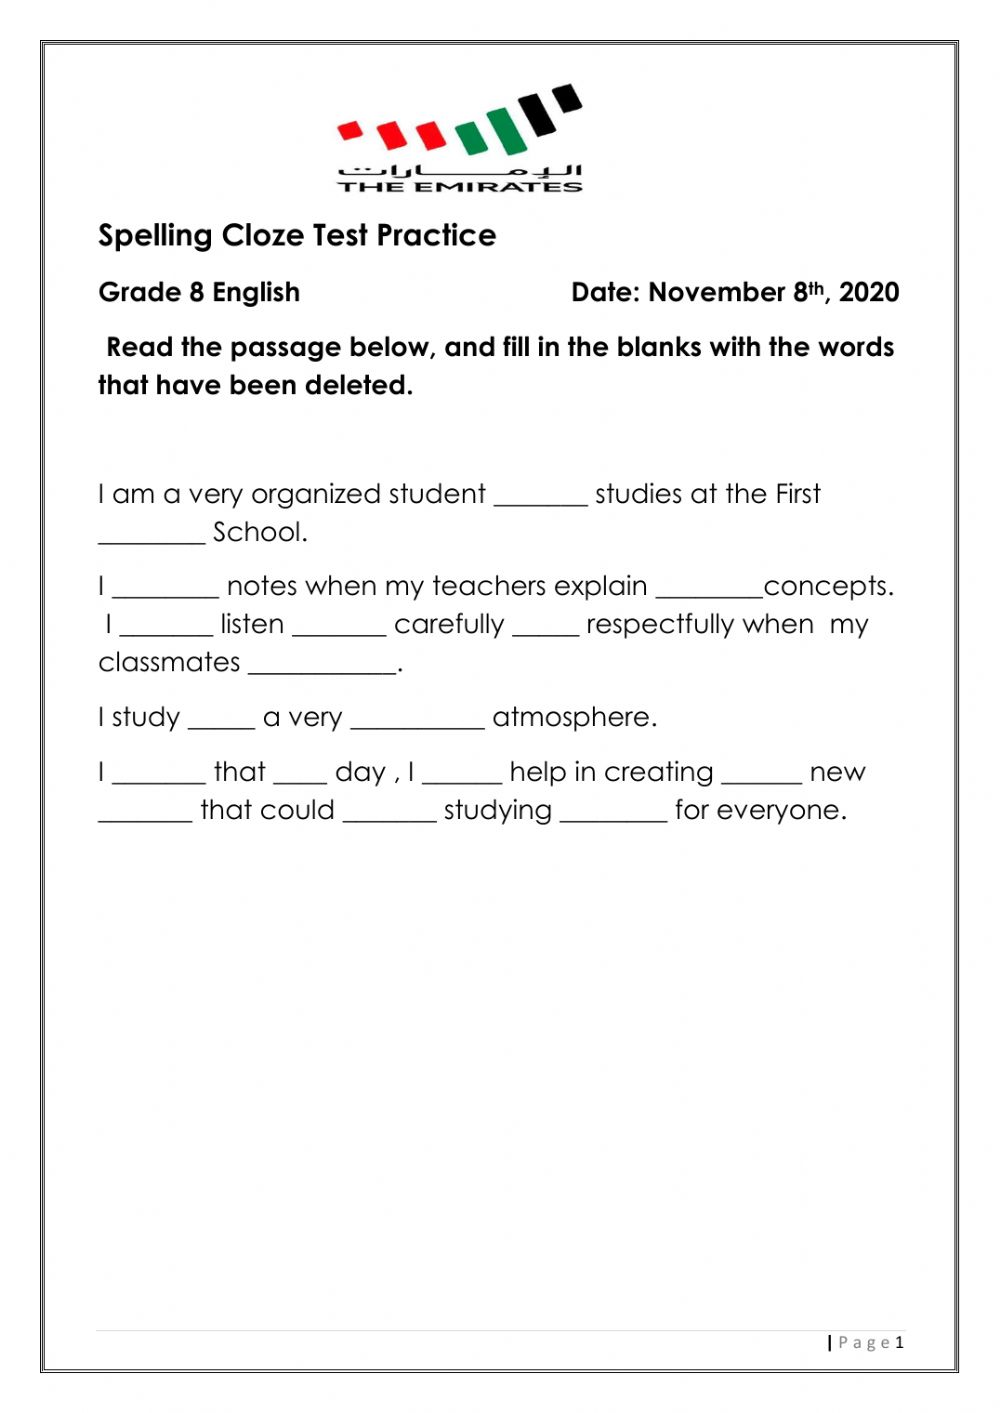 hight resolution of Spelling cloze test practice worksheet